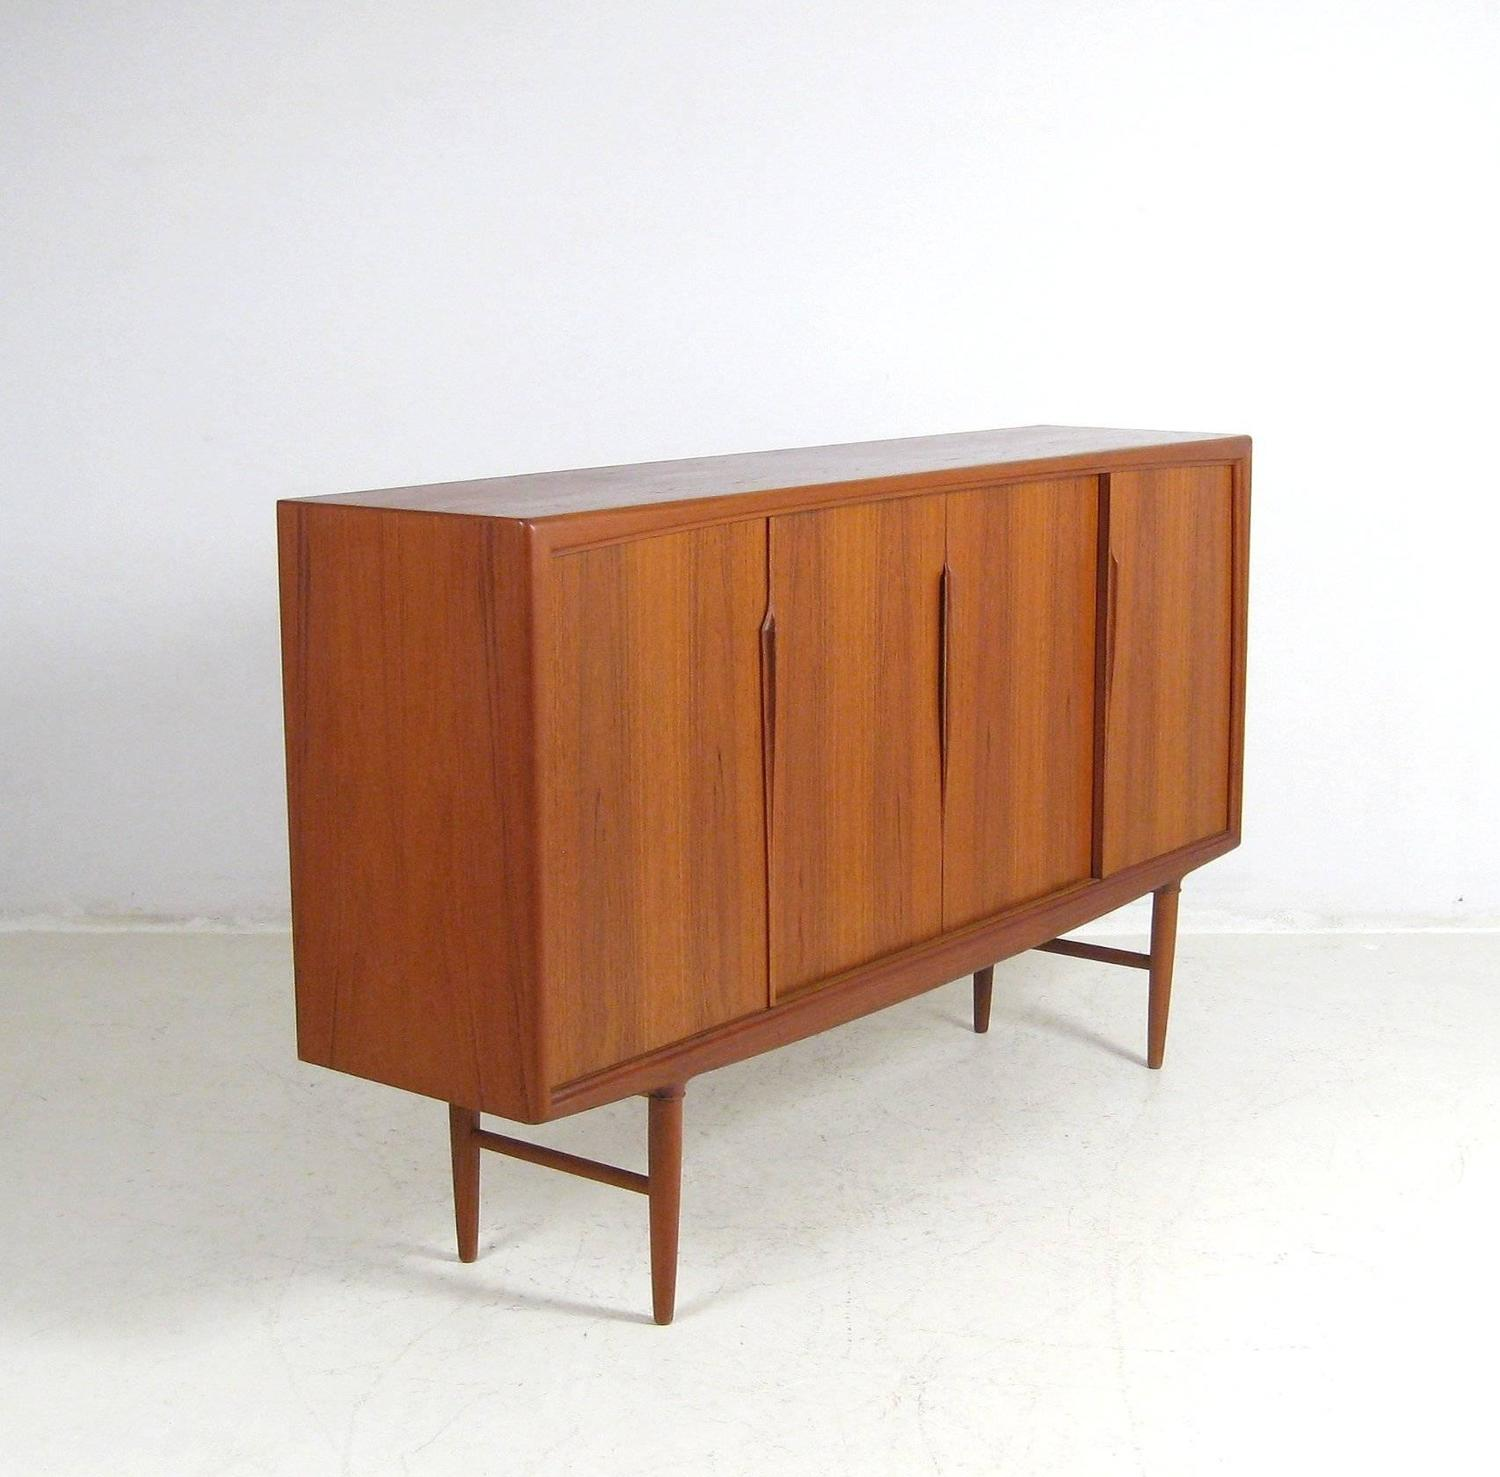 1960s Axel Christensen for Gunni Omann Teak Sideboard ...